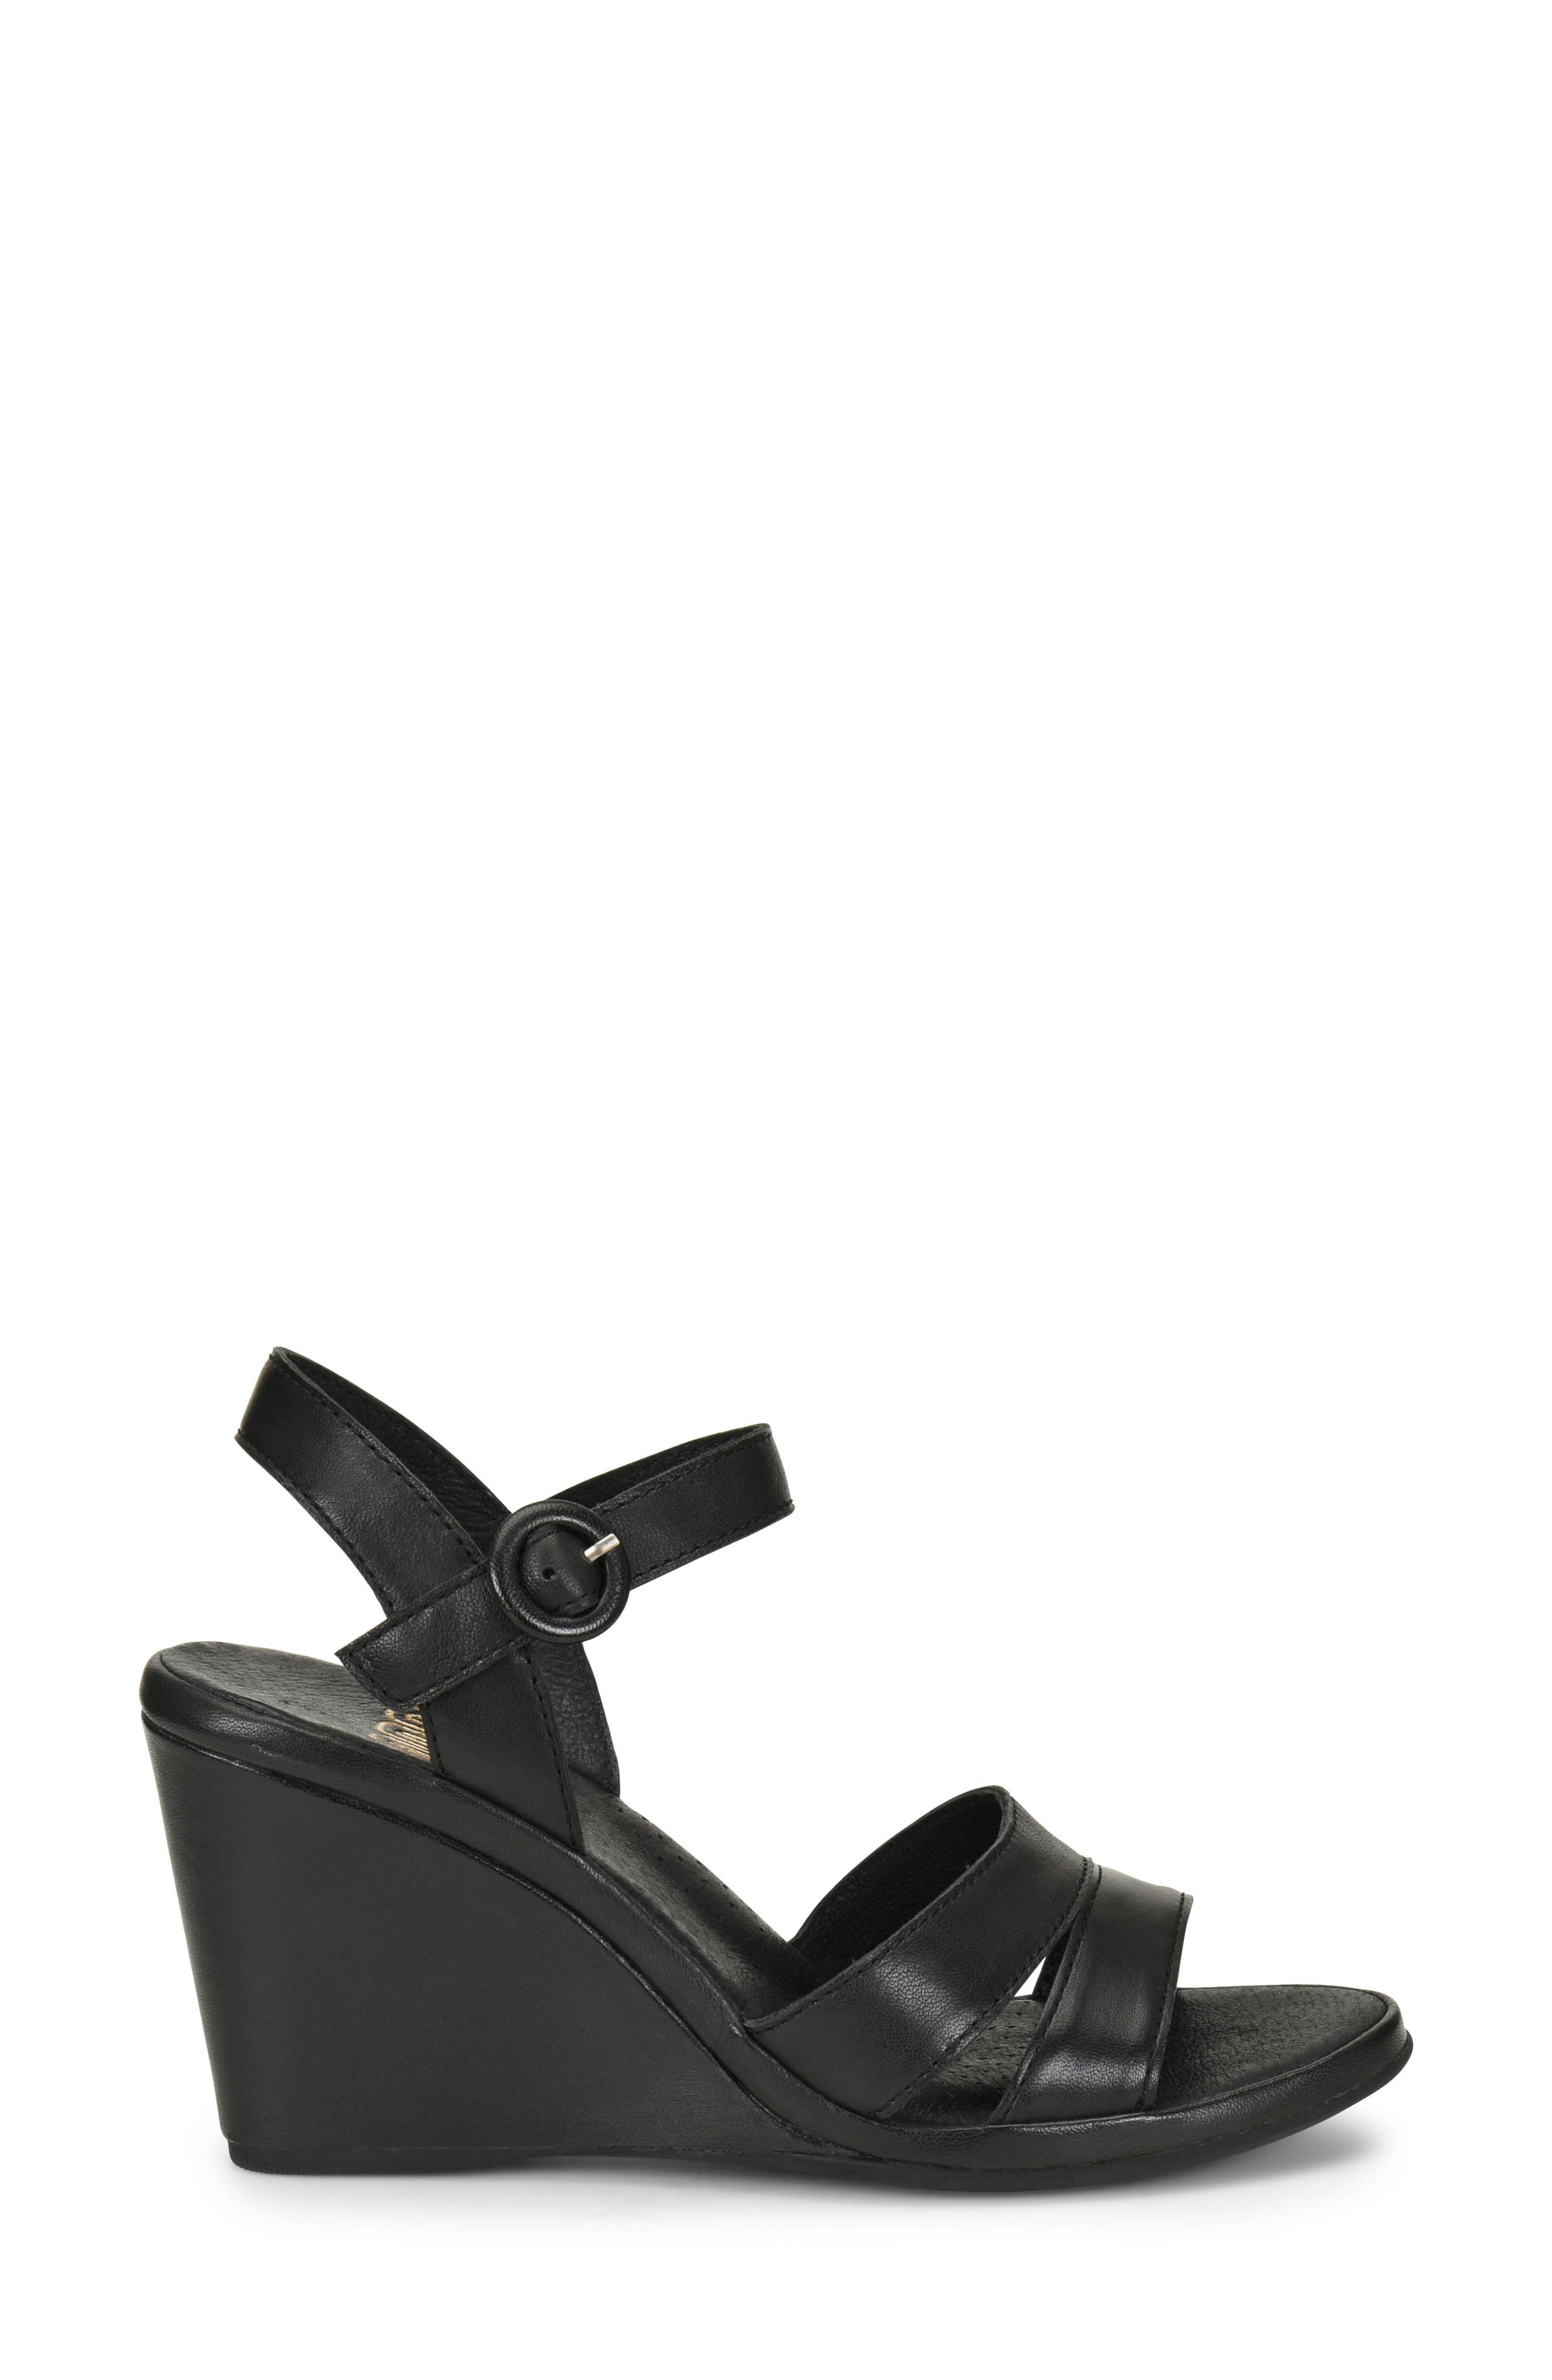 Hydro Wedge Sandal,                             Alternate thumbnail 3, color,                             BLACK LEATHER